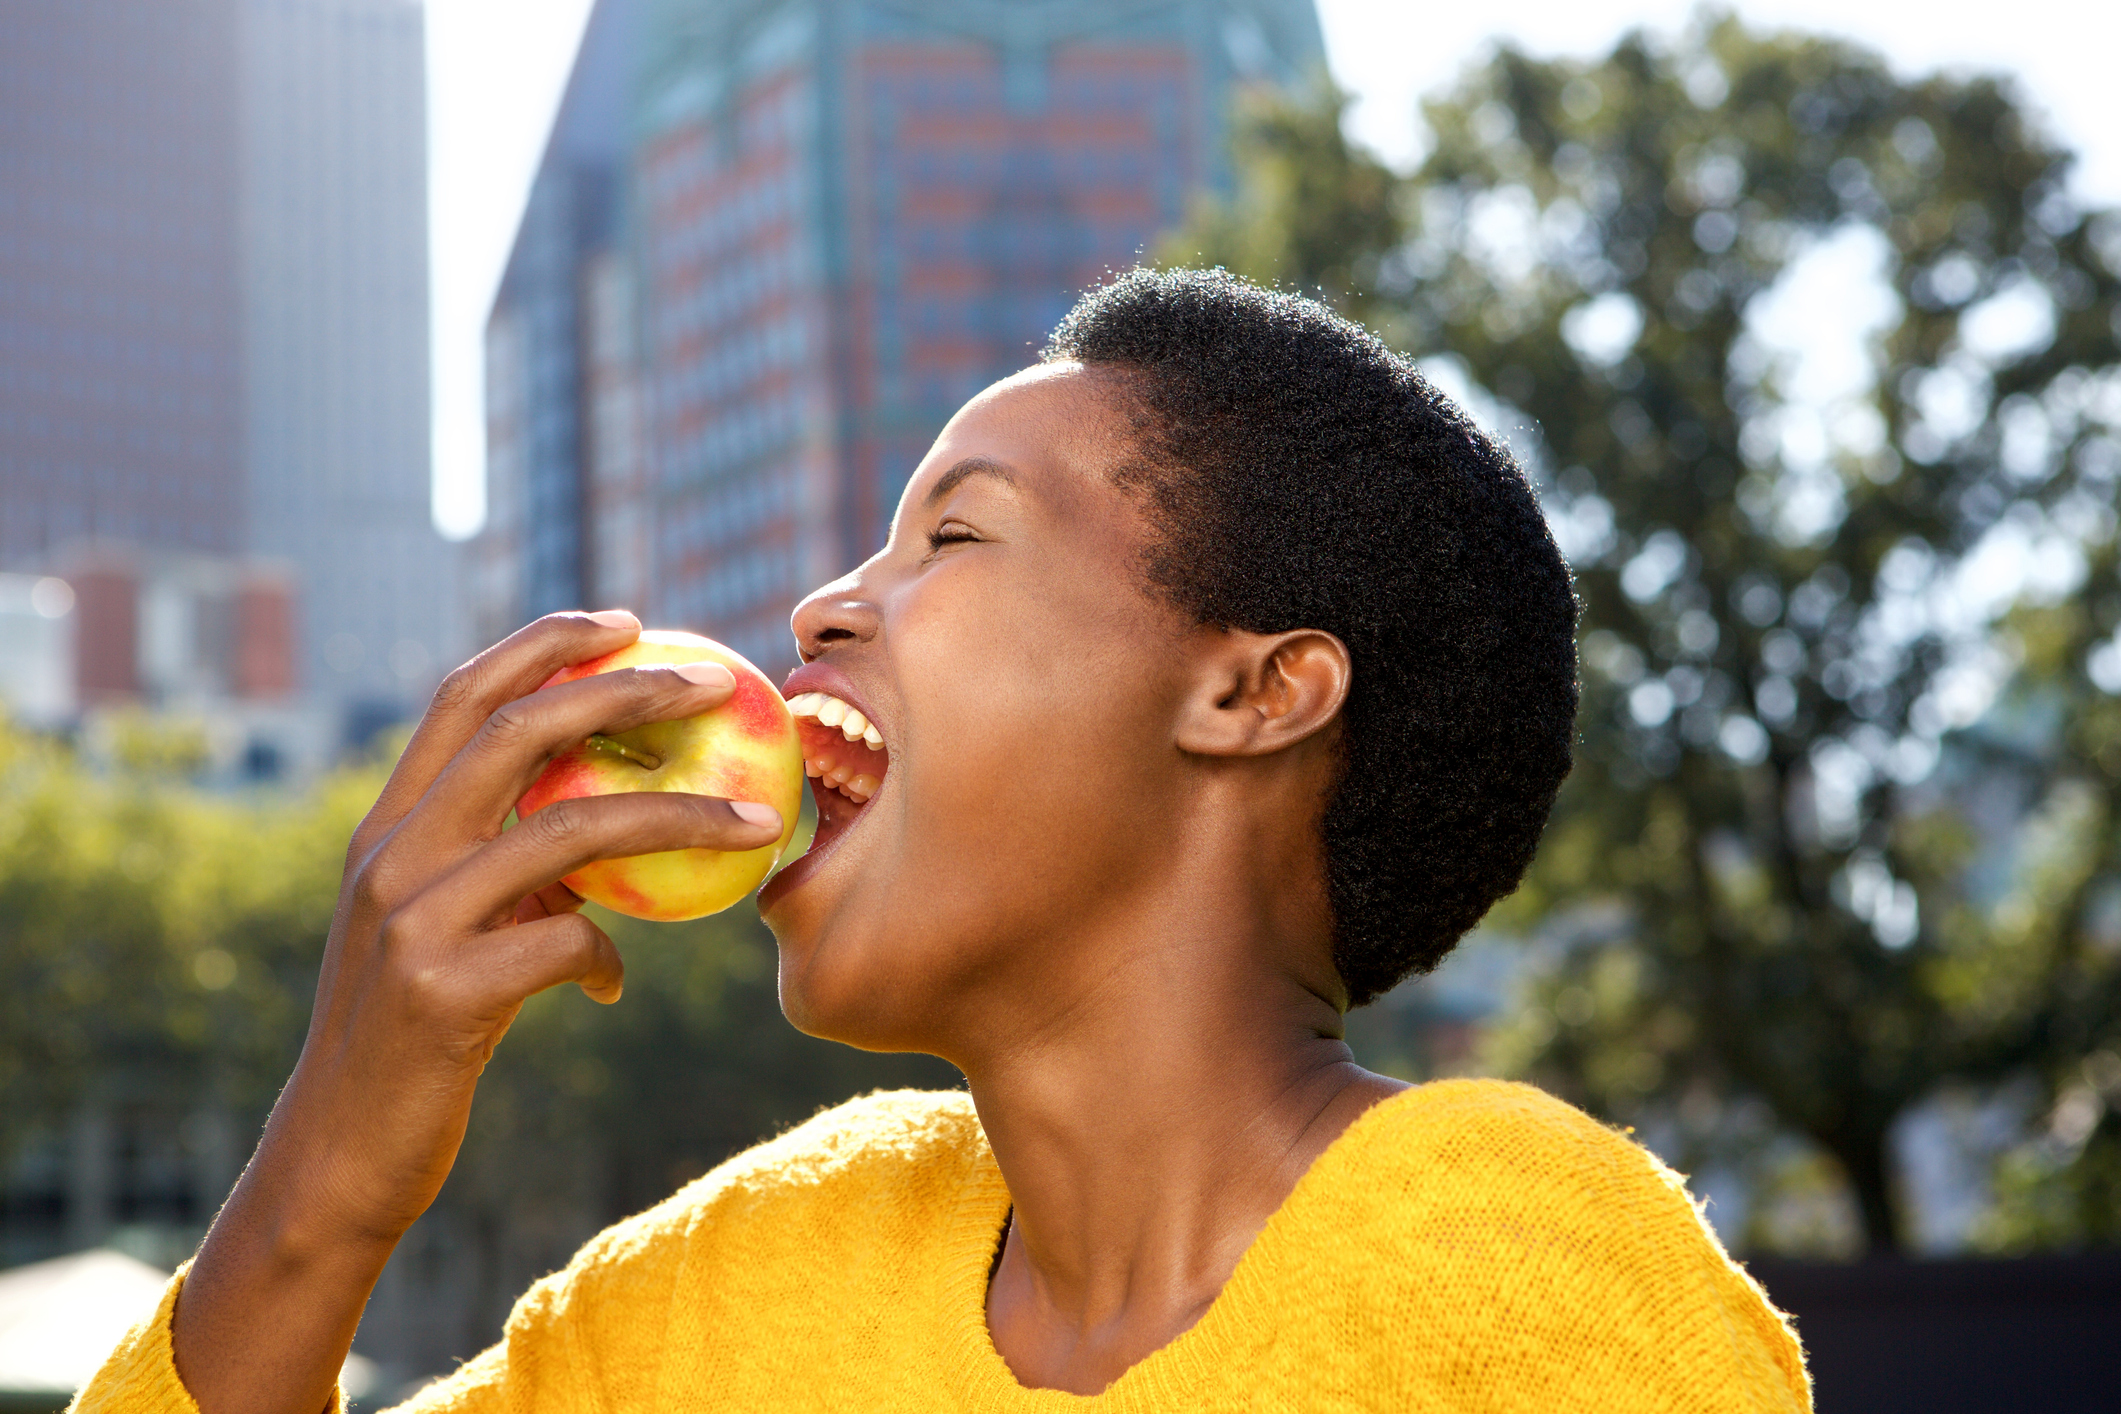 Eating the skins of some fruits could reverse the damage of MS